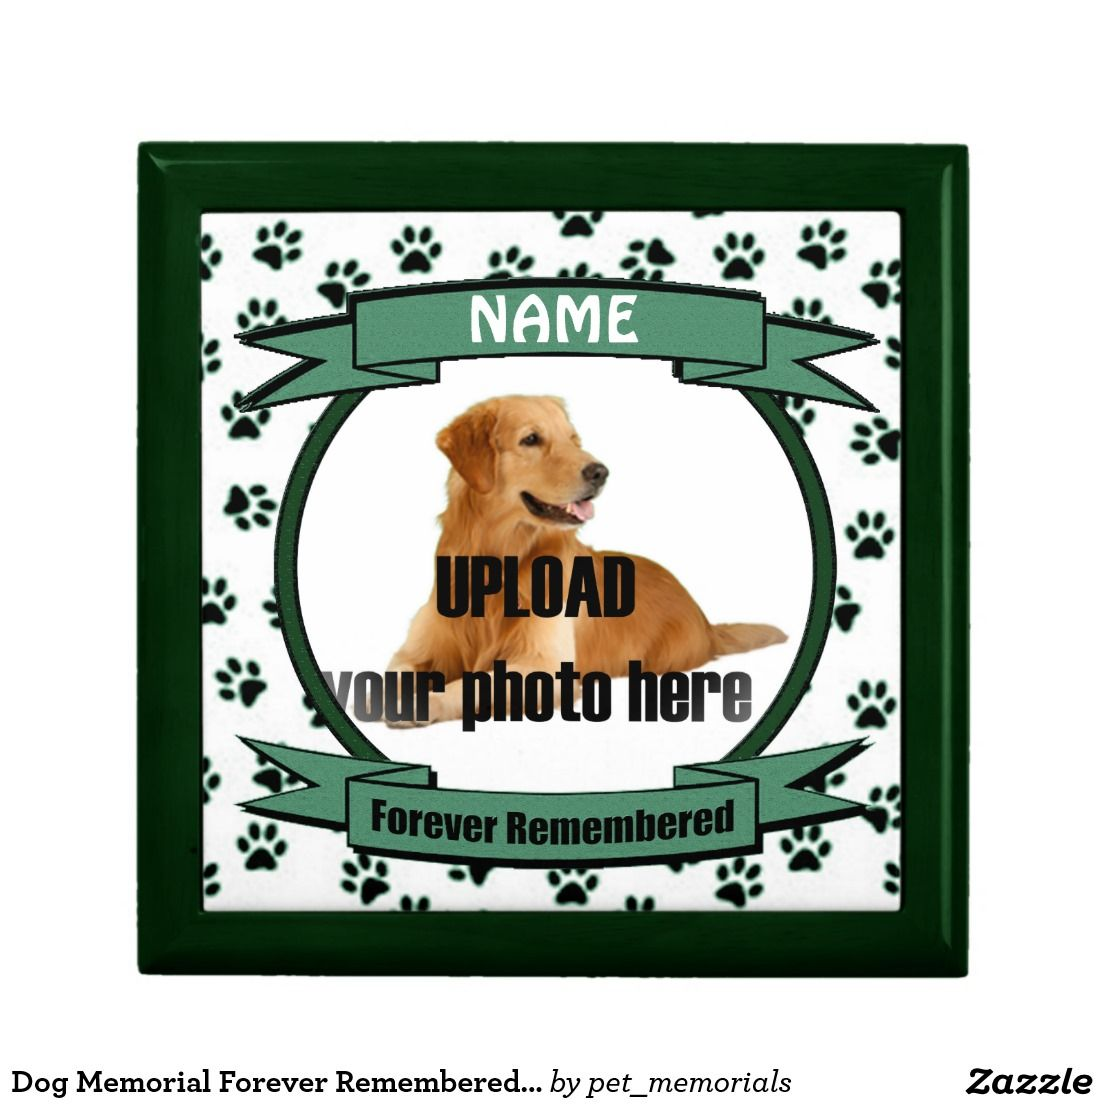 Dog or Cat Memorial Forever Remembered Green Gift Box